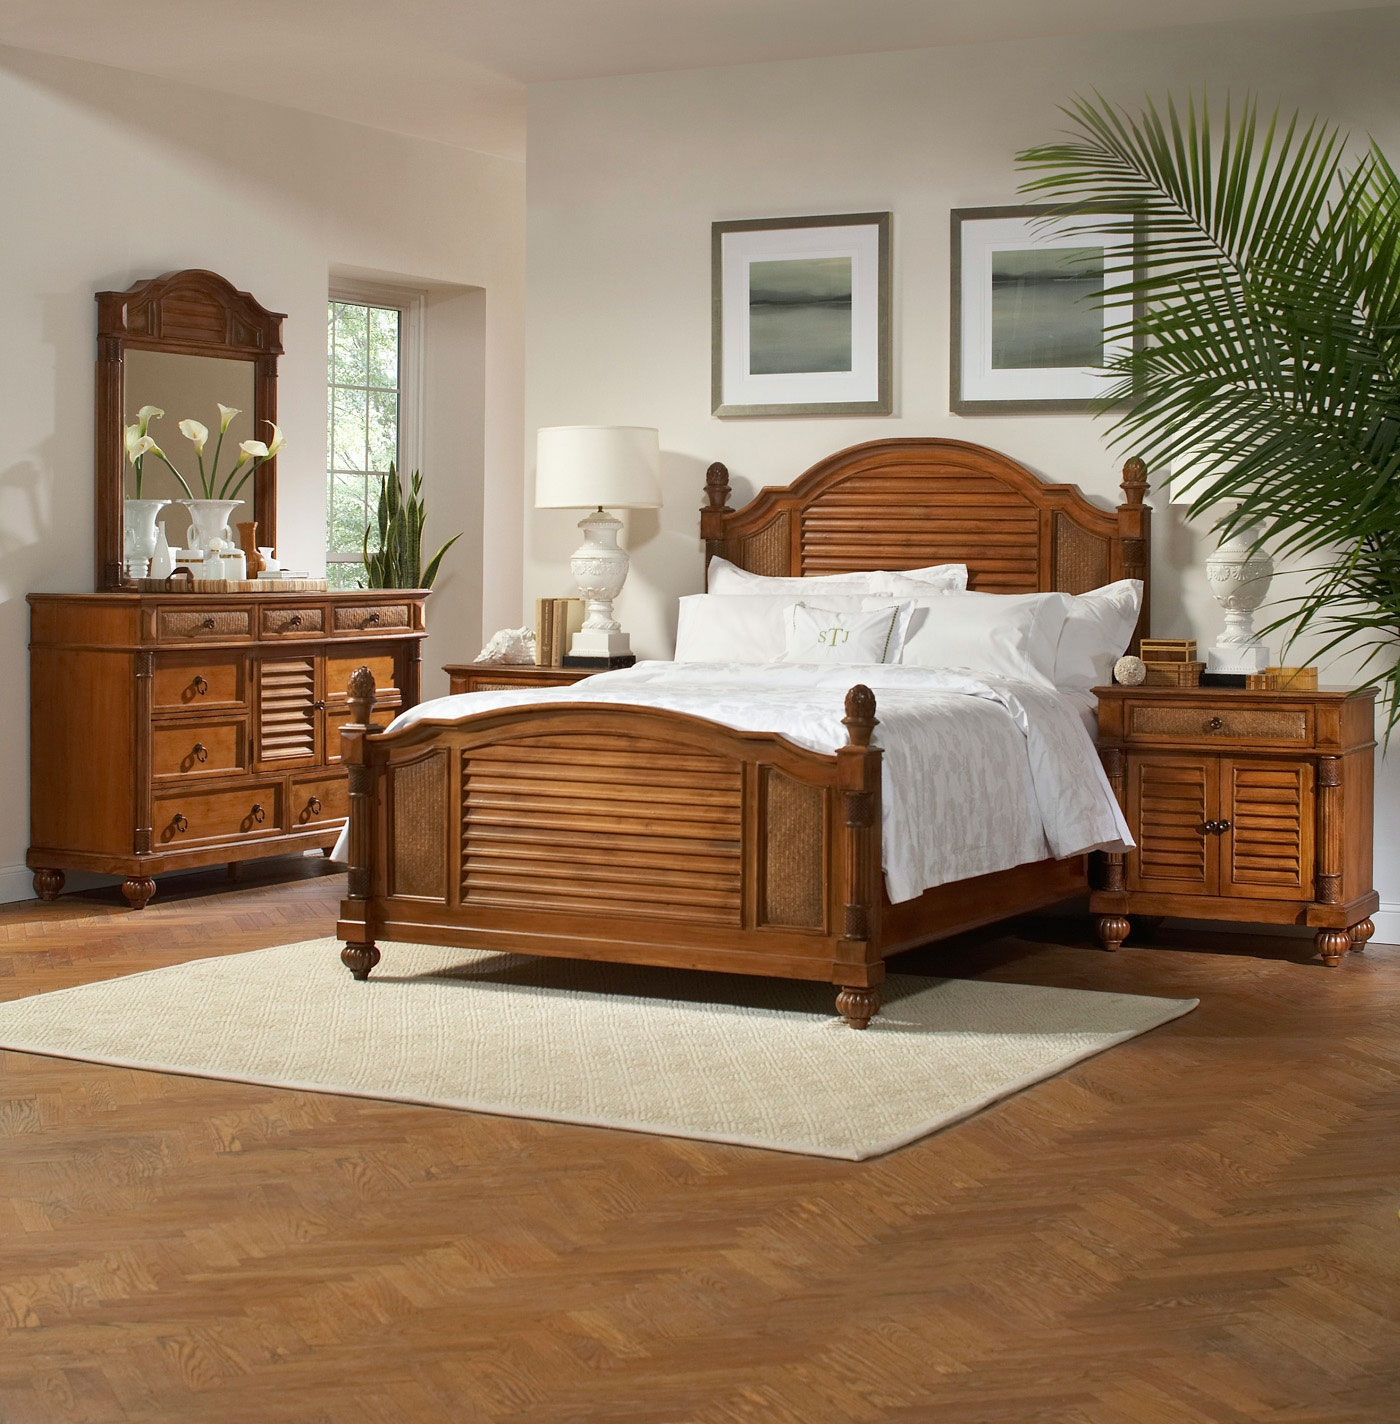 Braxton Culler Bedroom Queen Bed 875 021   B.F. Myers Furniture    Goodlettsville And Nashville Area, TN